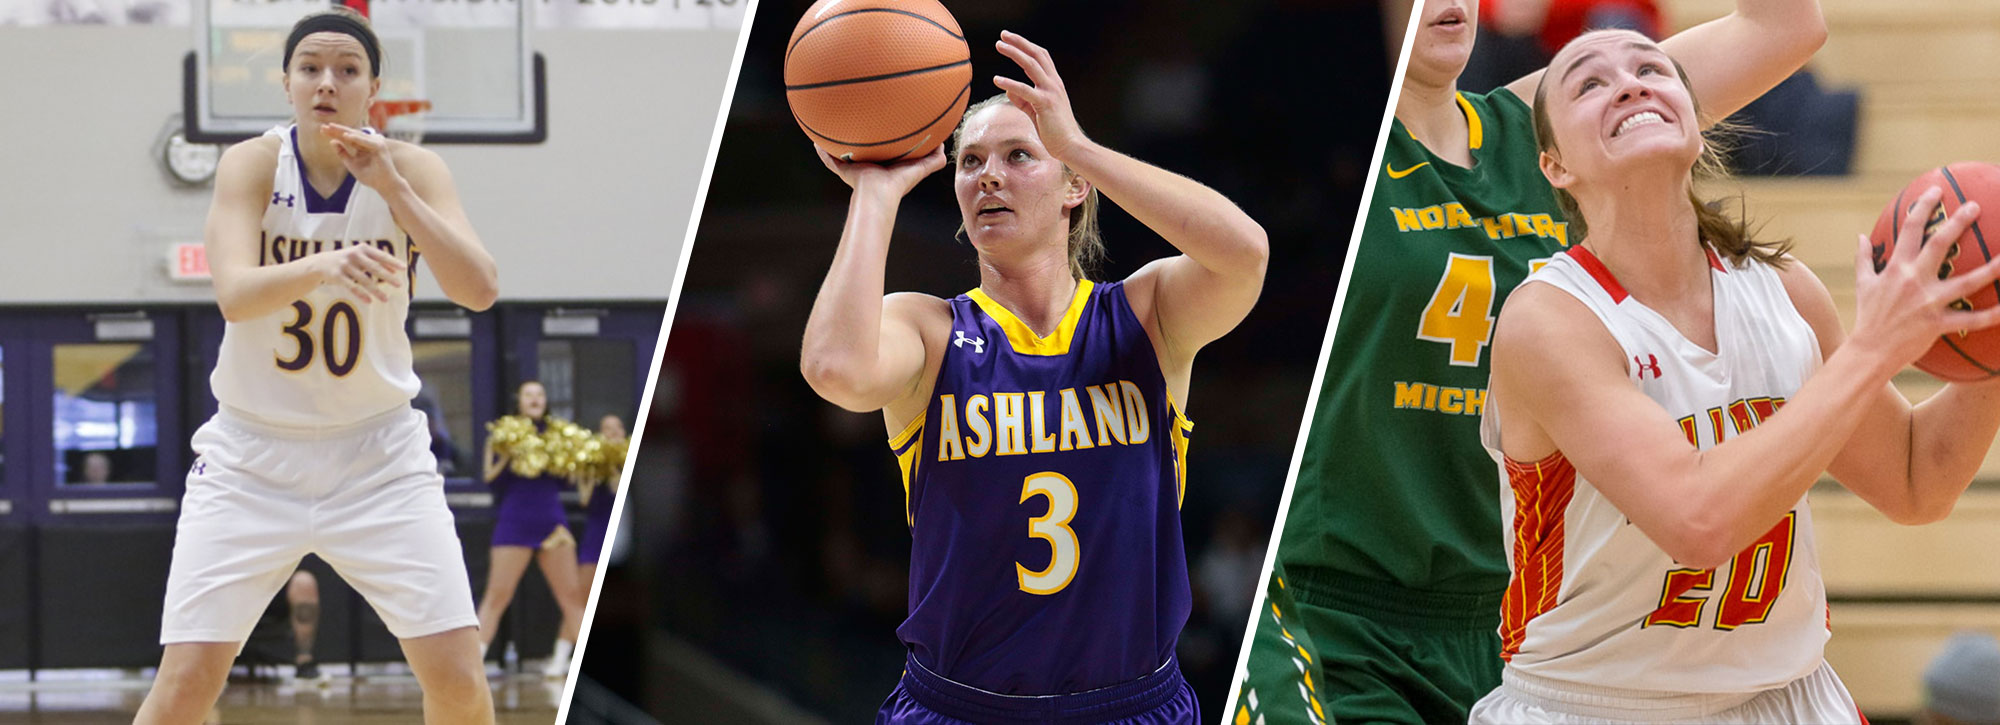 Ashland's Daugherty & Snyder, Ferris State's McInerney Earn CoSIDA Academic All-America Honors